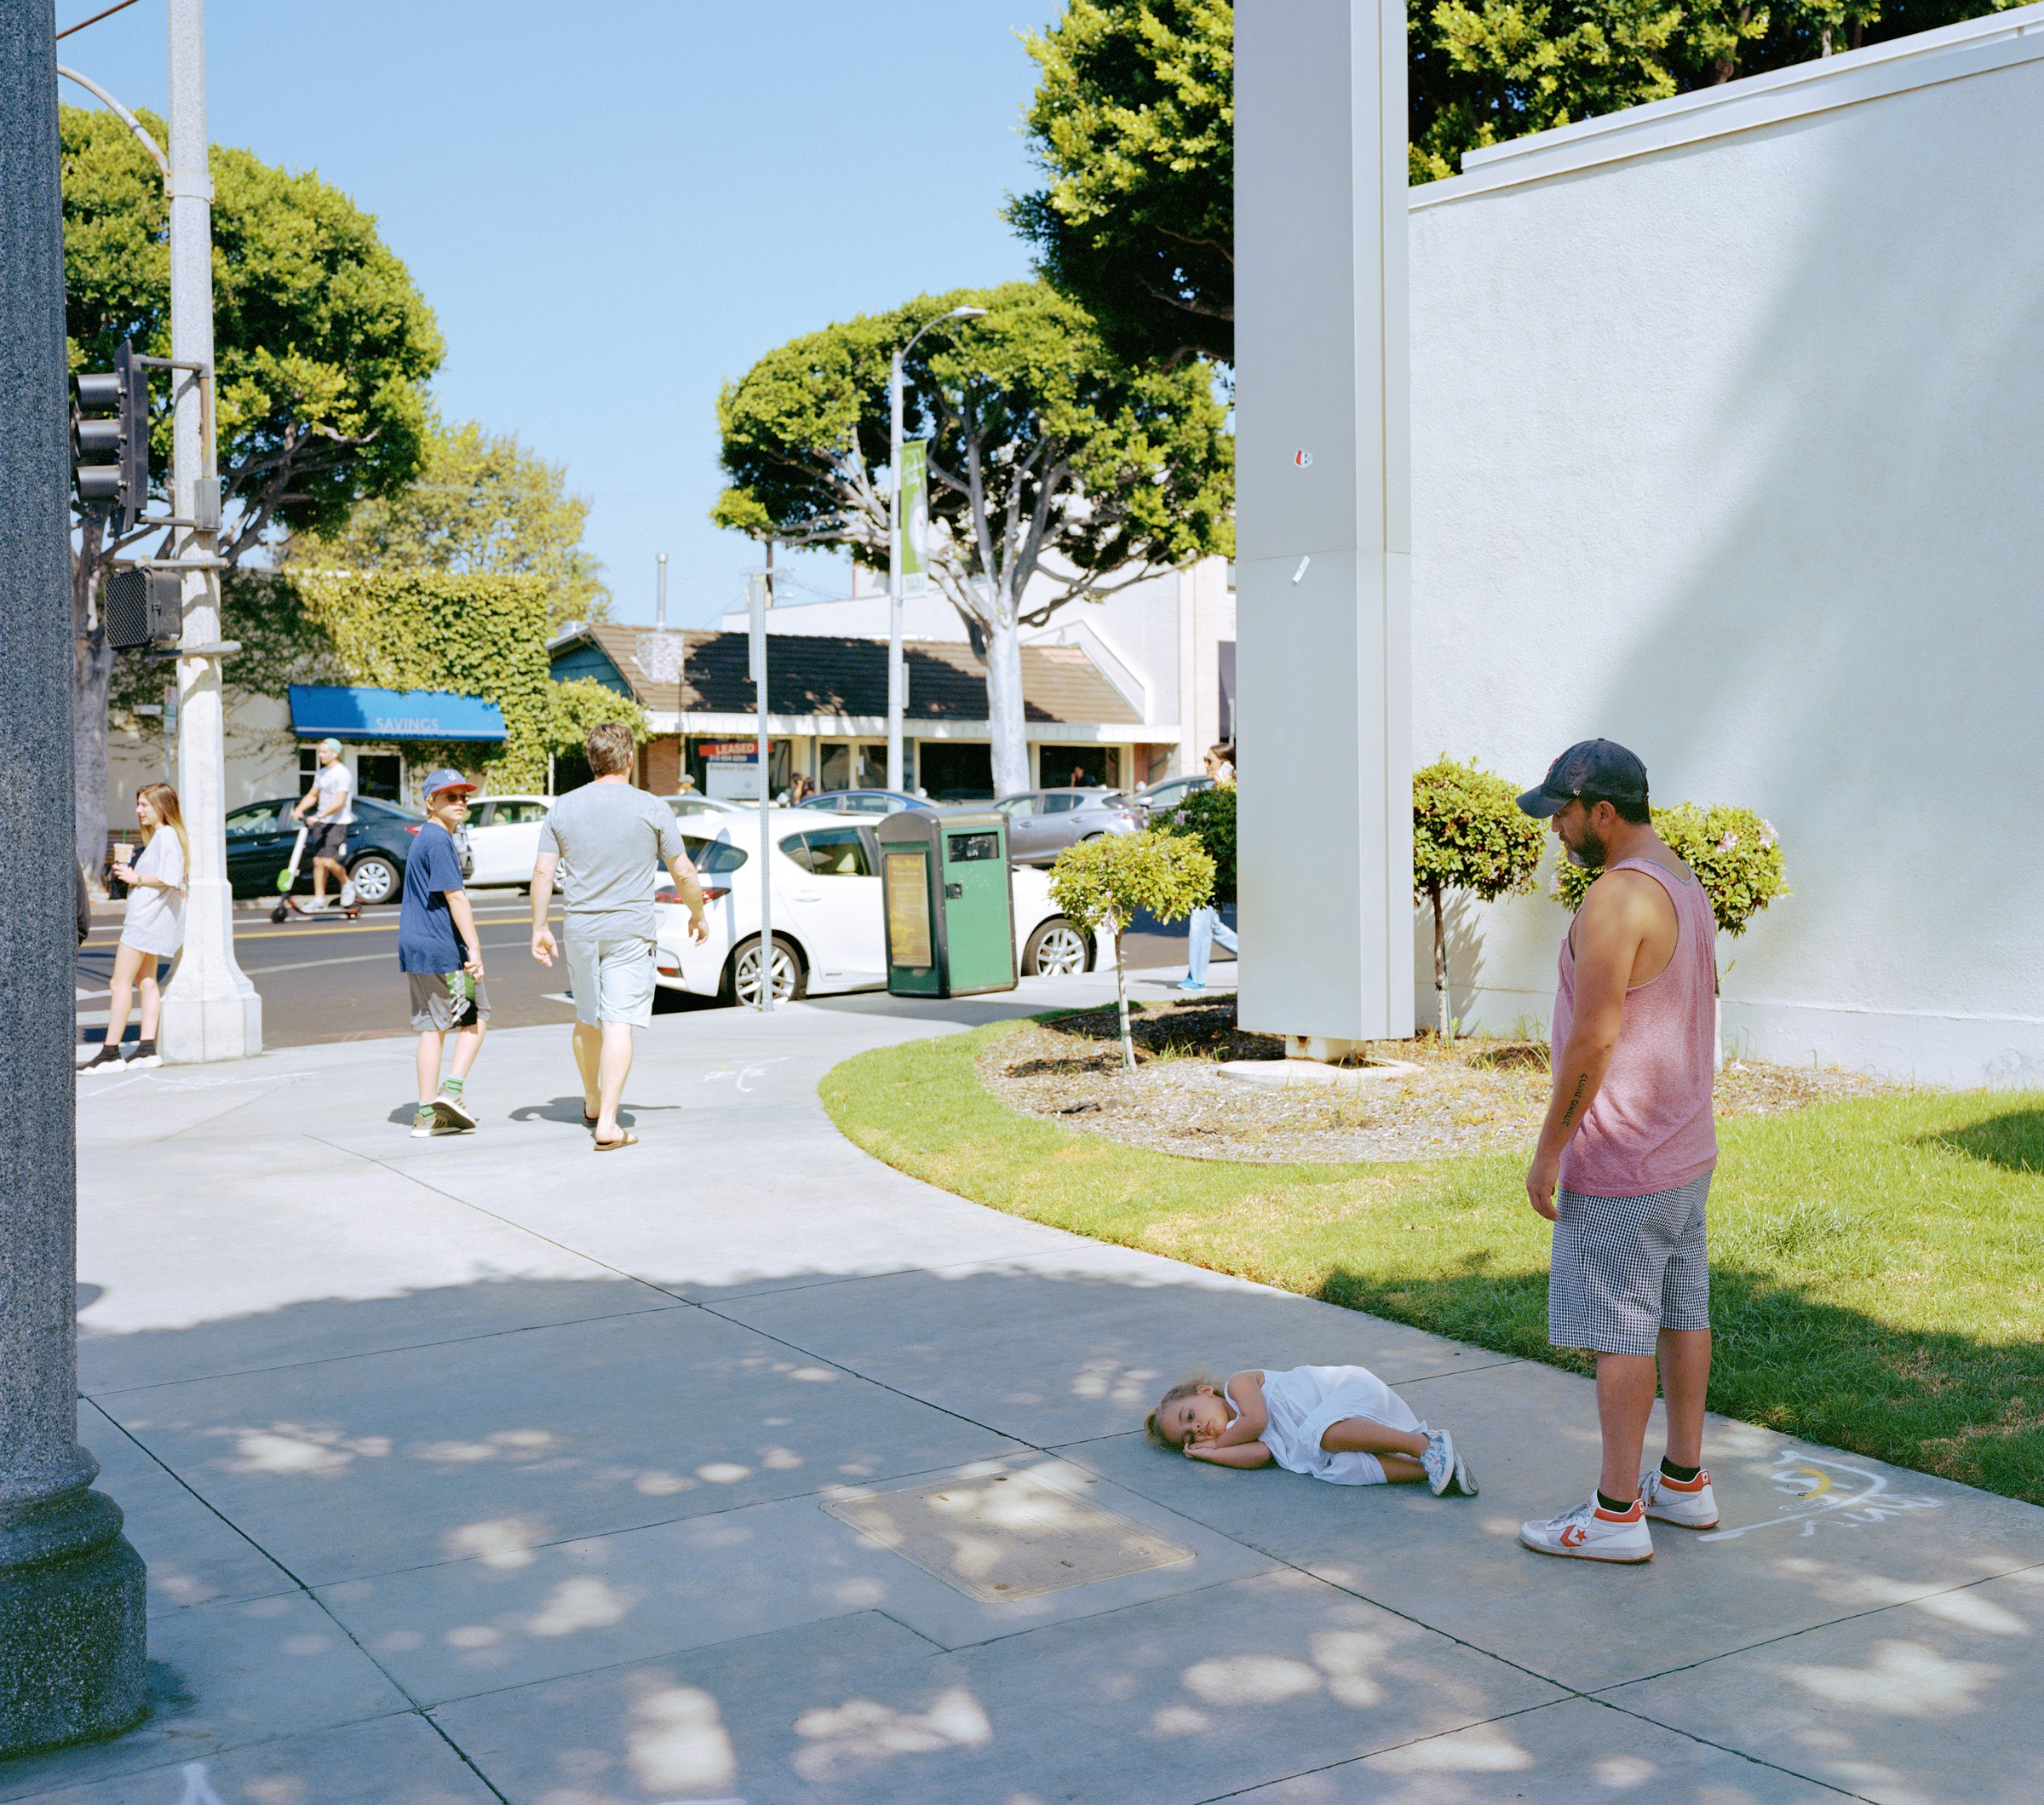 Parent child, Jeff Wall, 2018